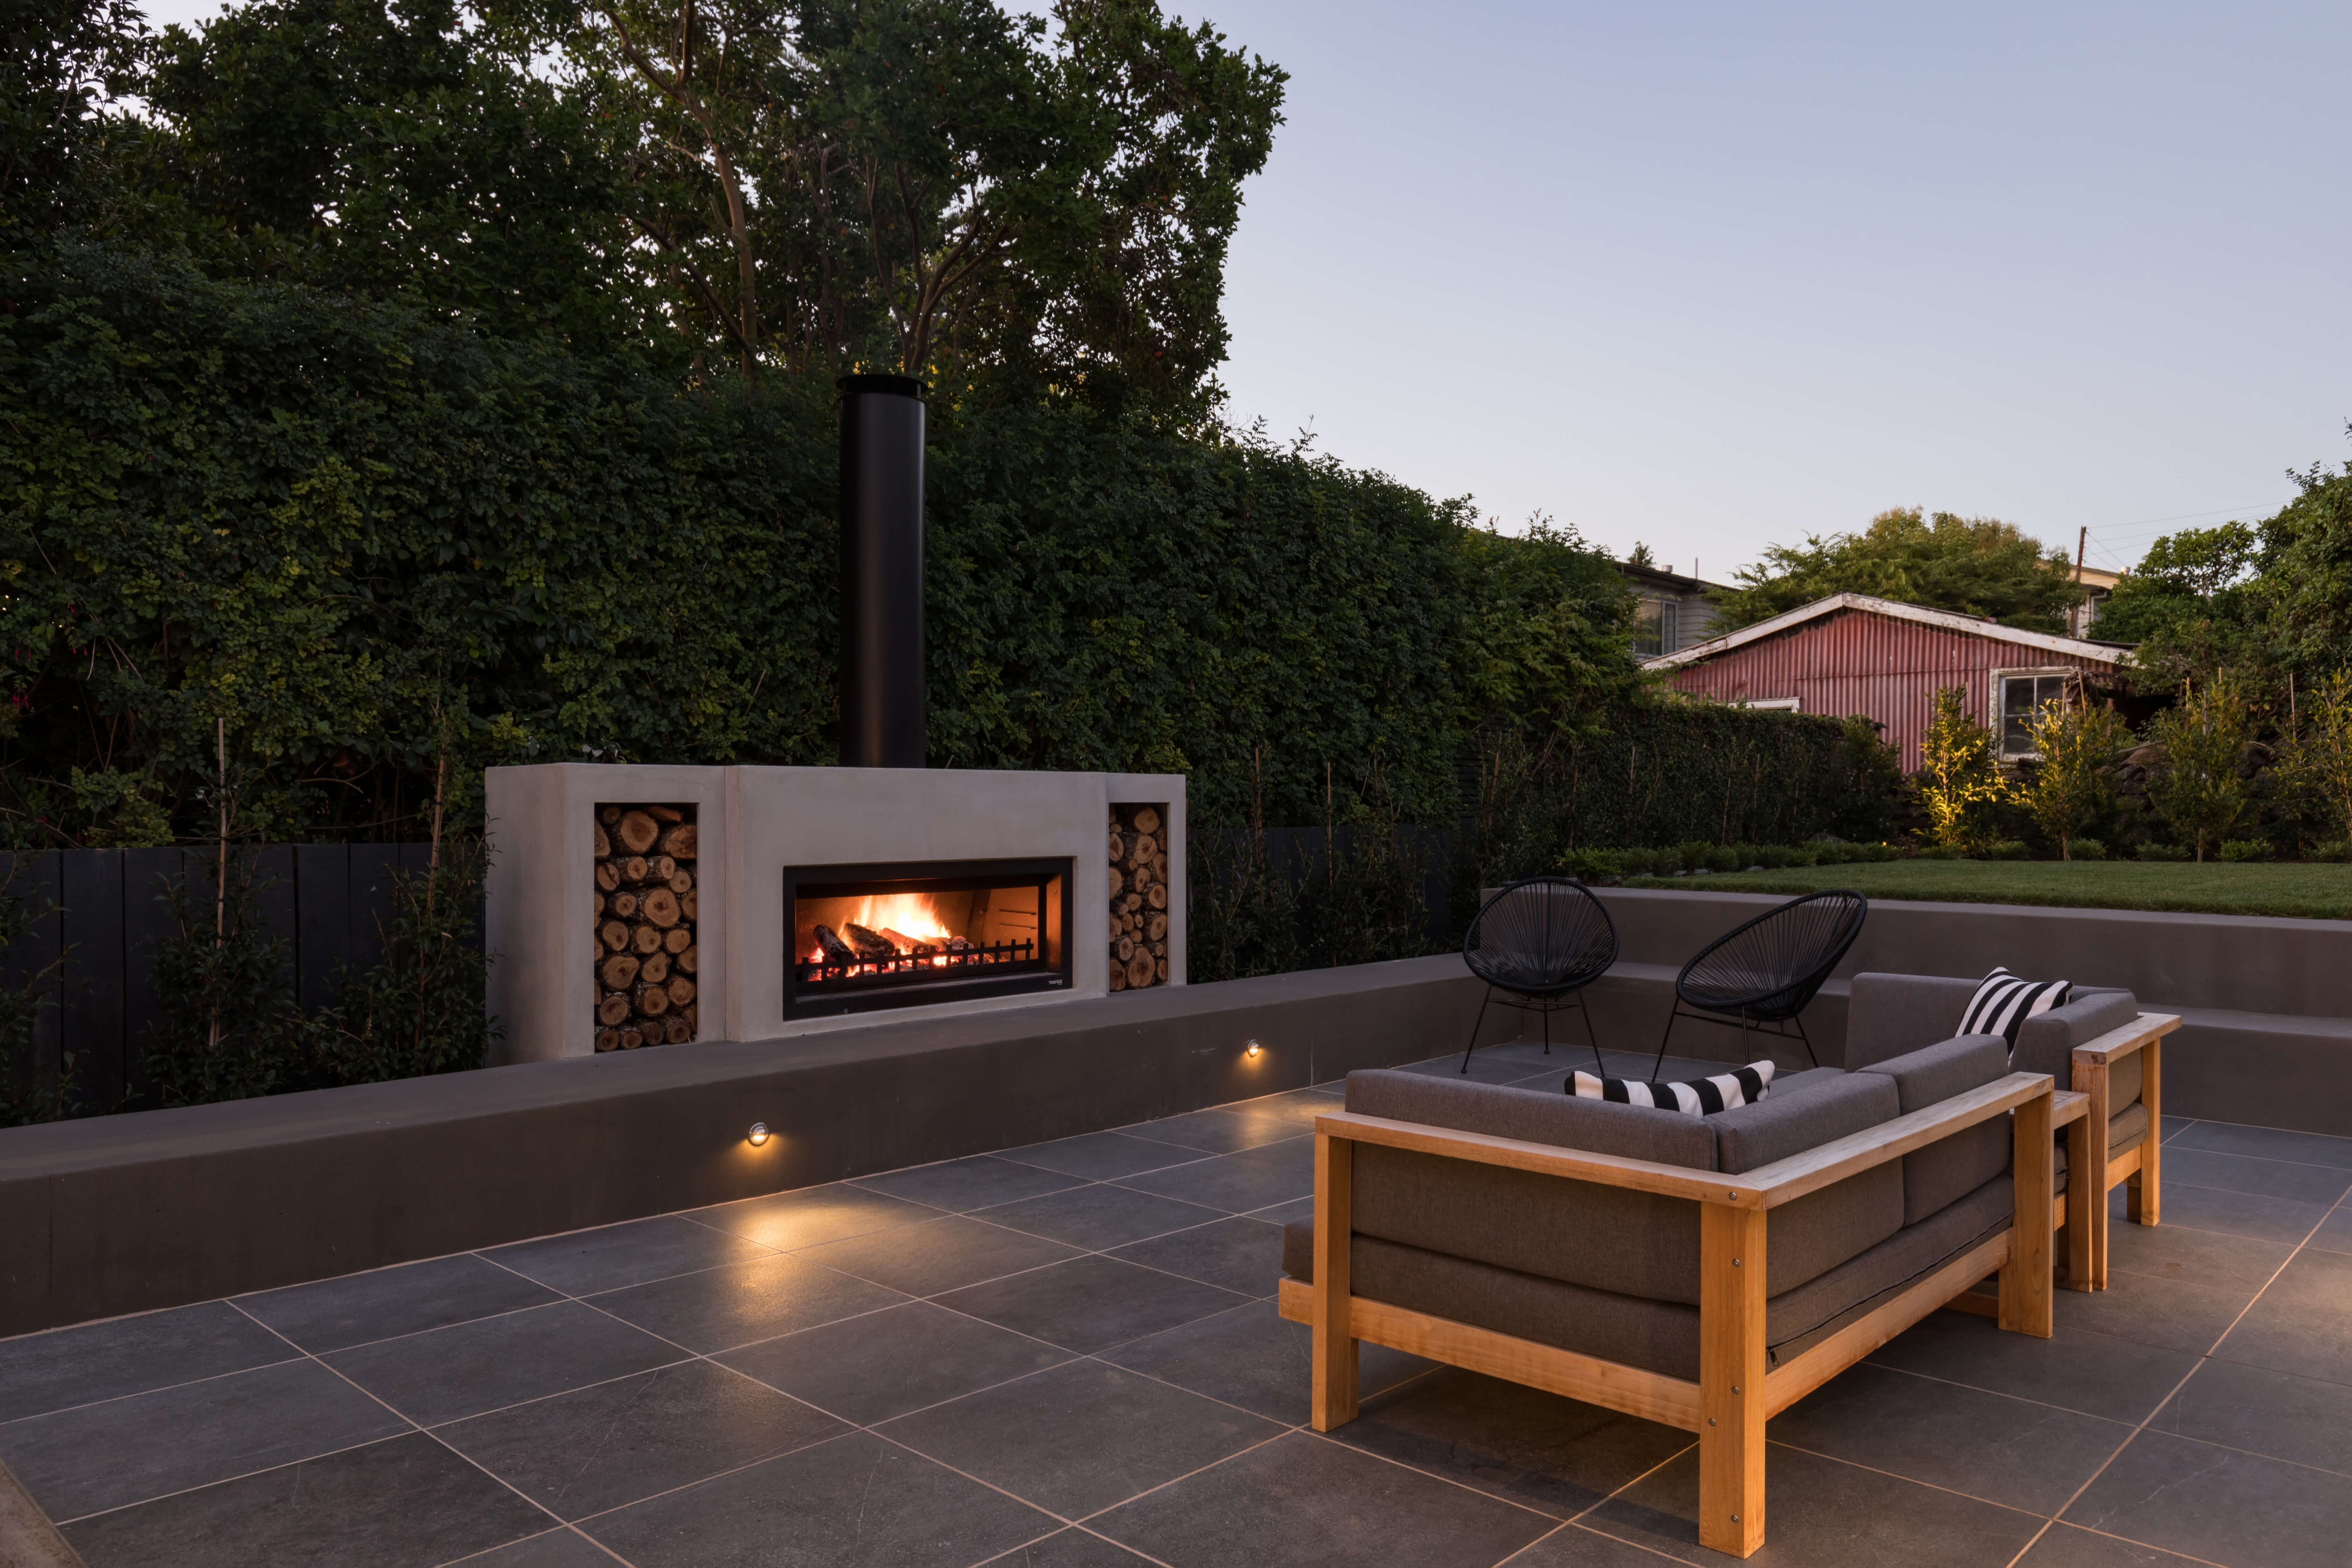 Outdoor fireplace with chimney cap